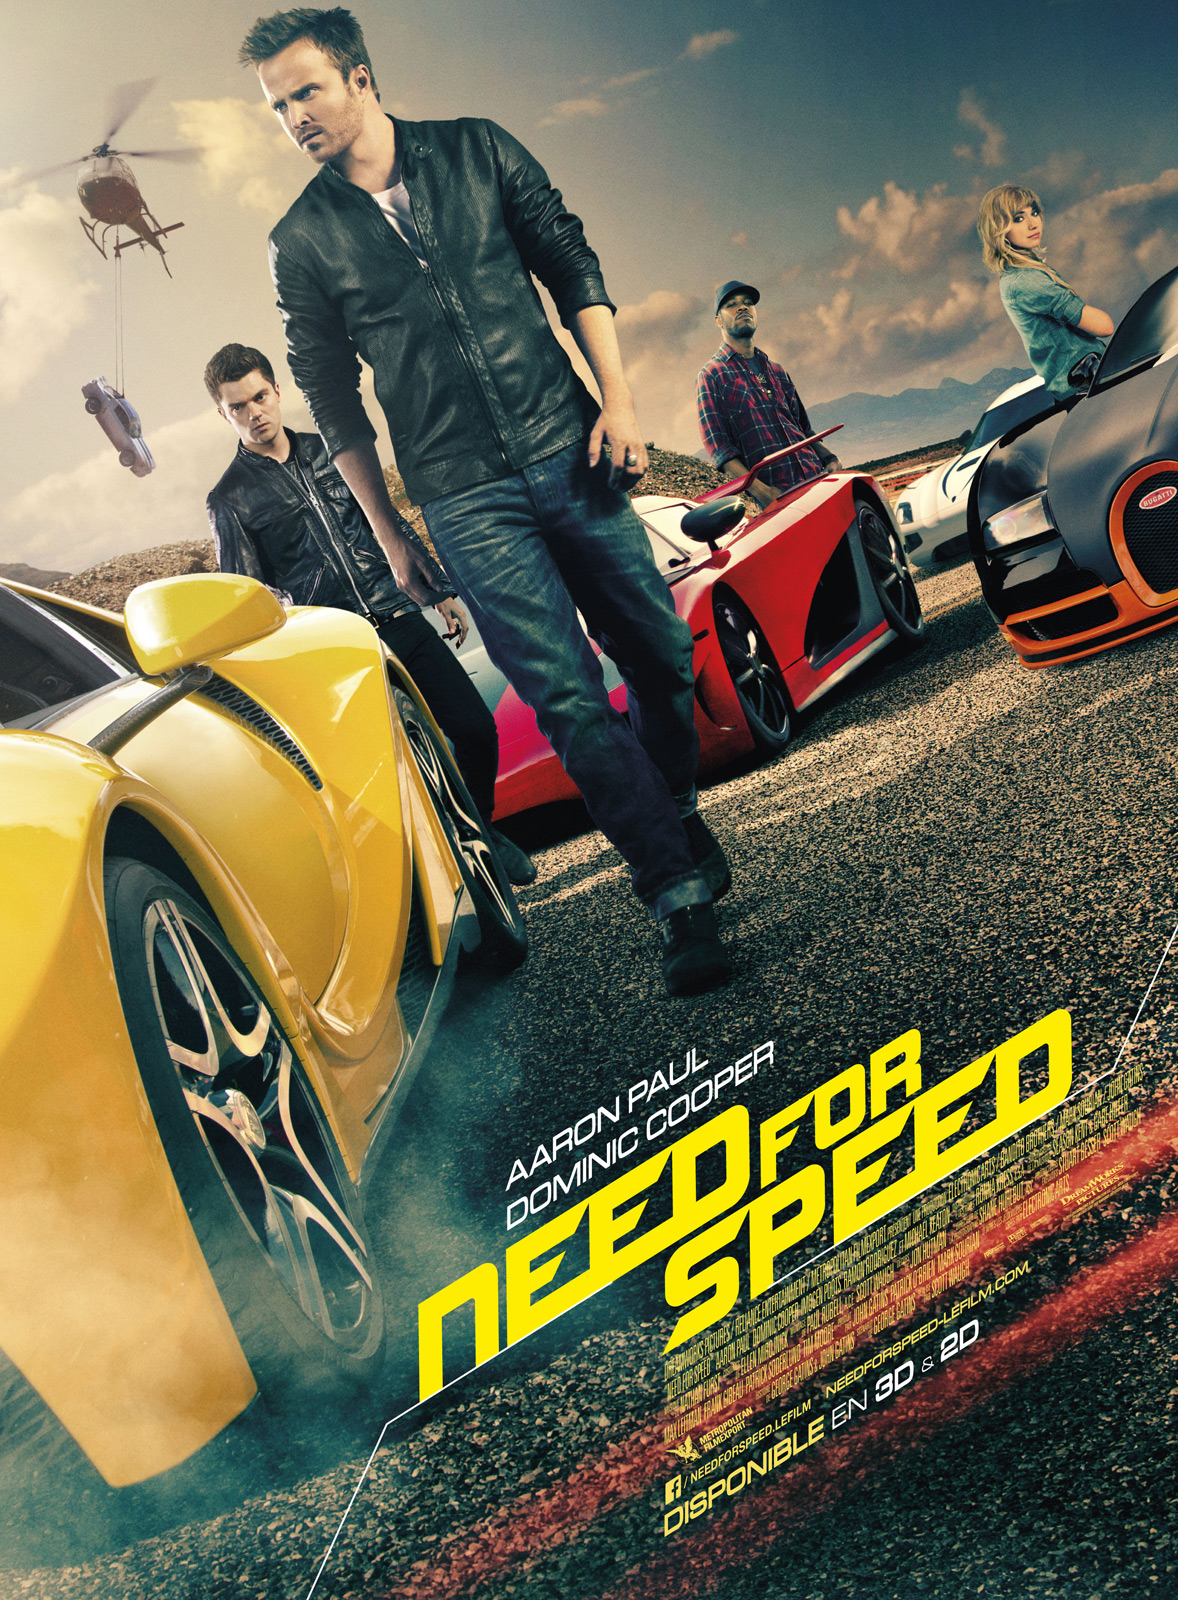 Need for speed affiche poster disney touchstone